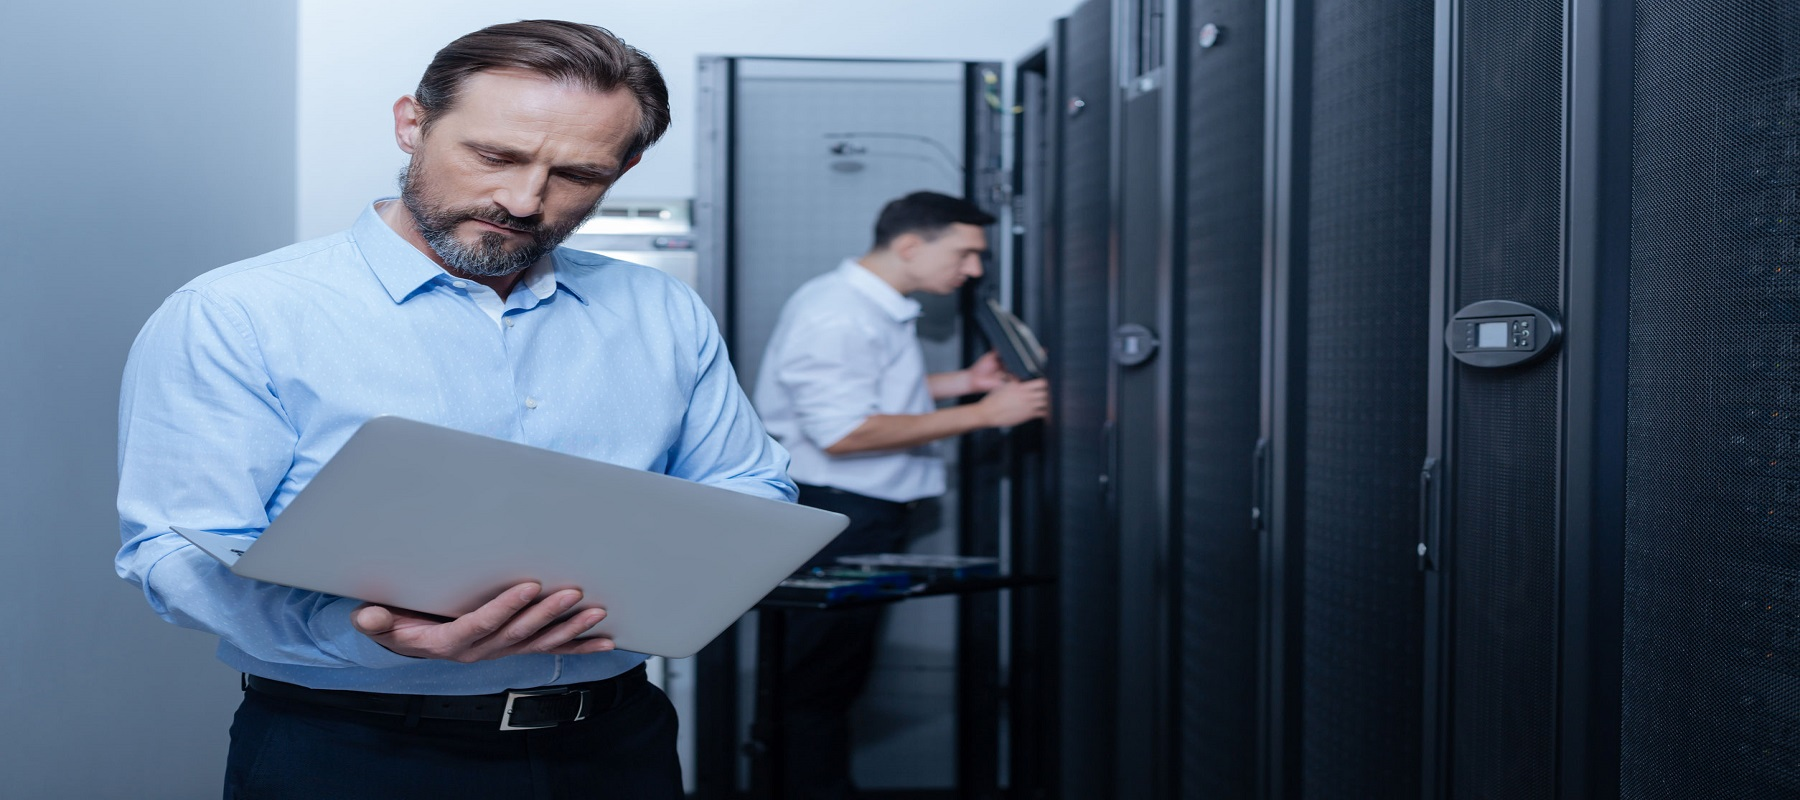 Top 3 Reasons to Rely on a Local London IT Consulting Firm for Tech Services